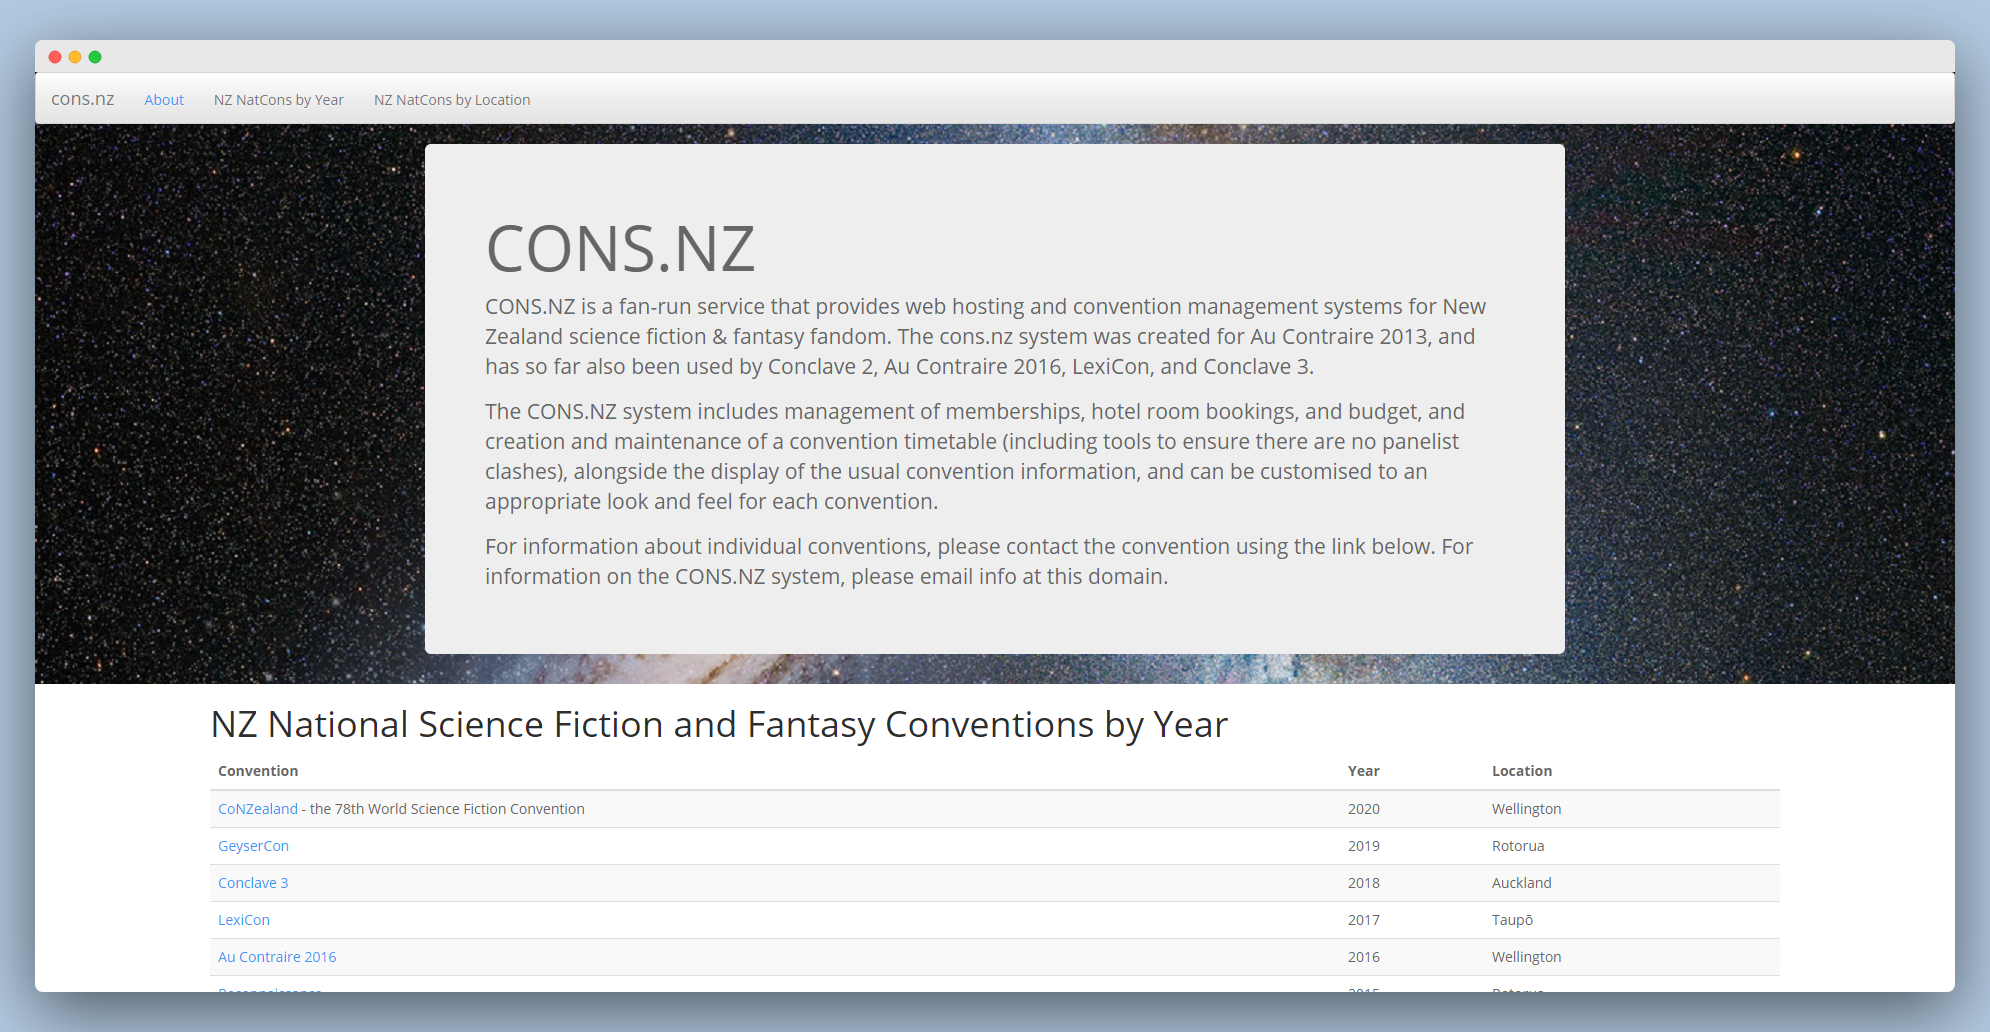 screenshot of the cons.nz website